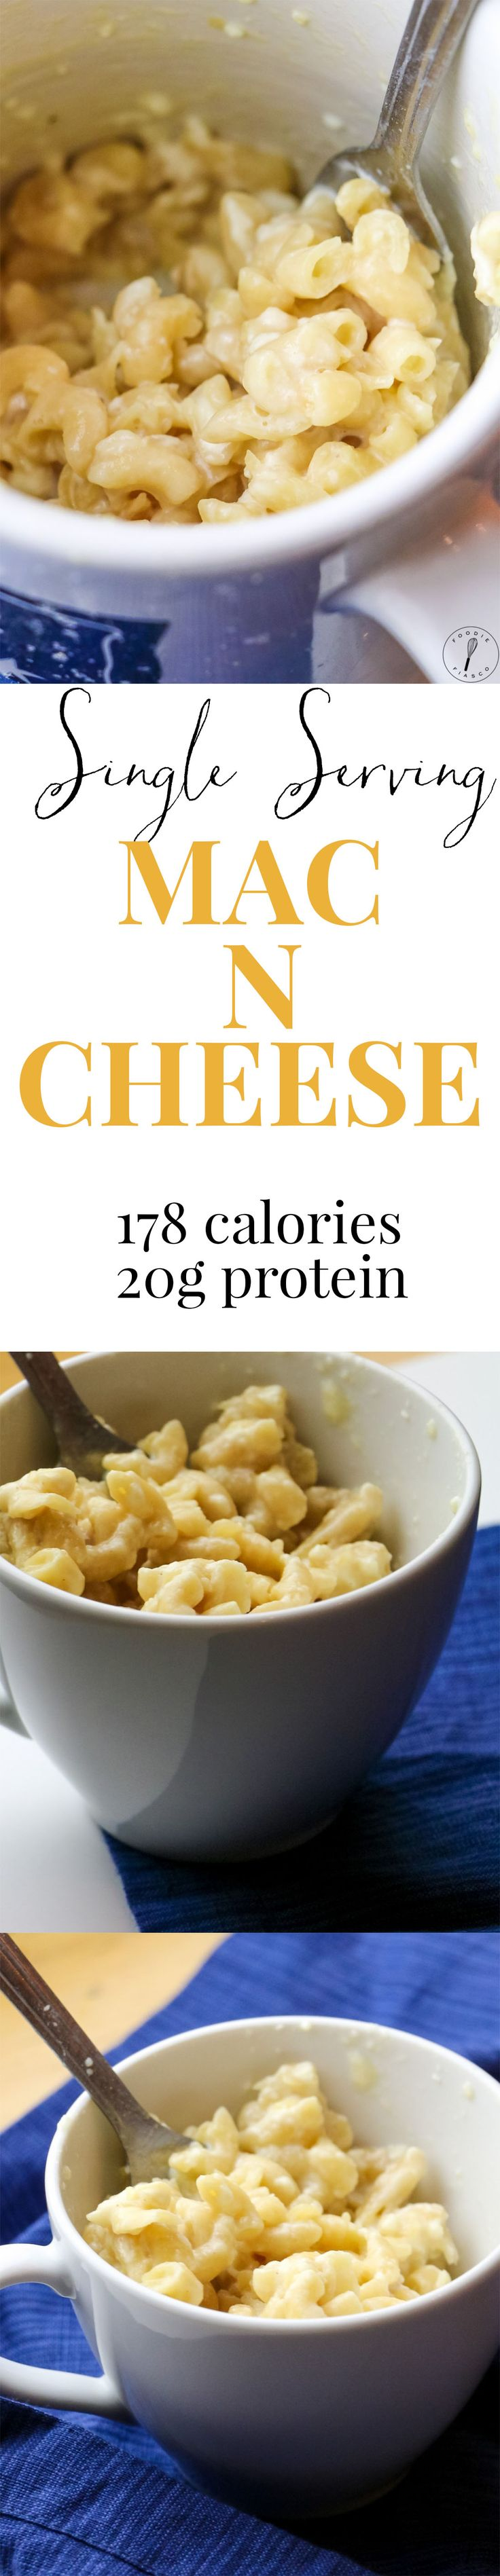 You NEED this single serving mac n cheese in your life. Just as easy and a lot tastier than the boxed stuff, plus it's so much healthier!! Only 178 calories and ready in the microwave in only 10 minutes.